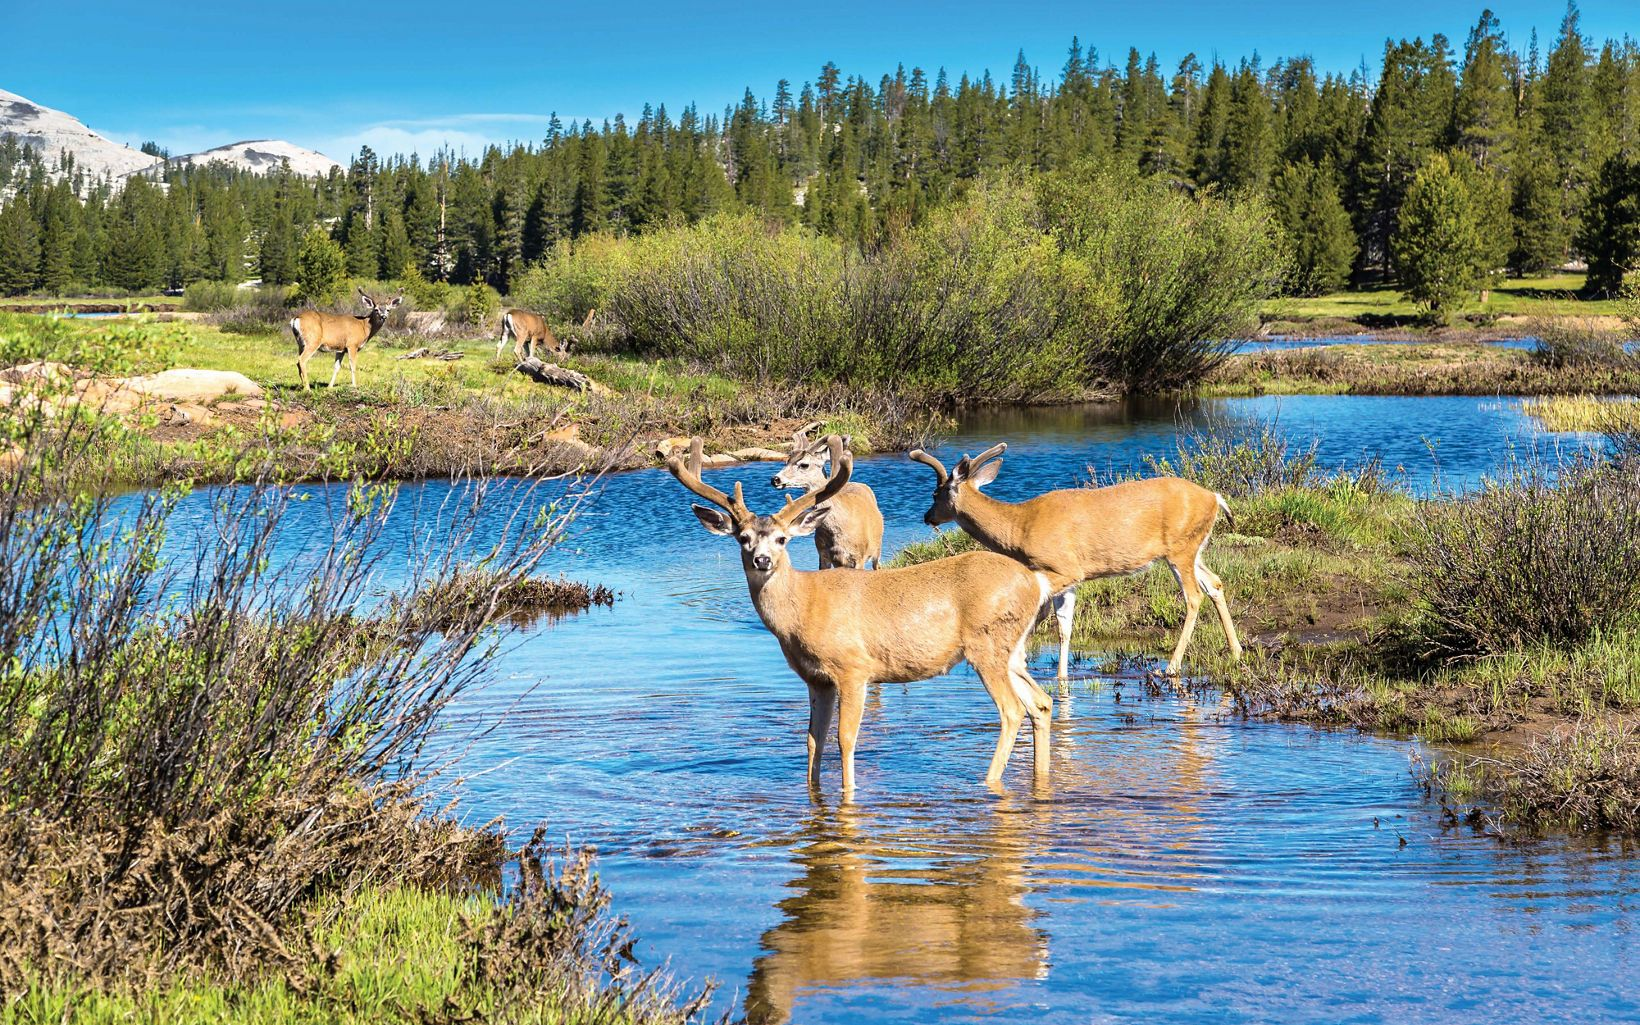 Two adult brown deer wade in a stream close to the bank, with 2 more deer in the background on land. Conifers and mountains are in the background.